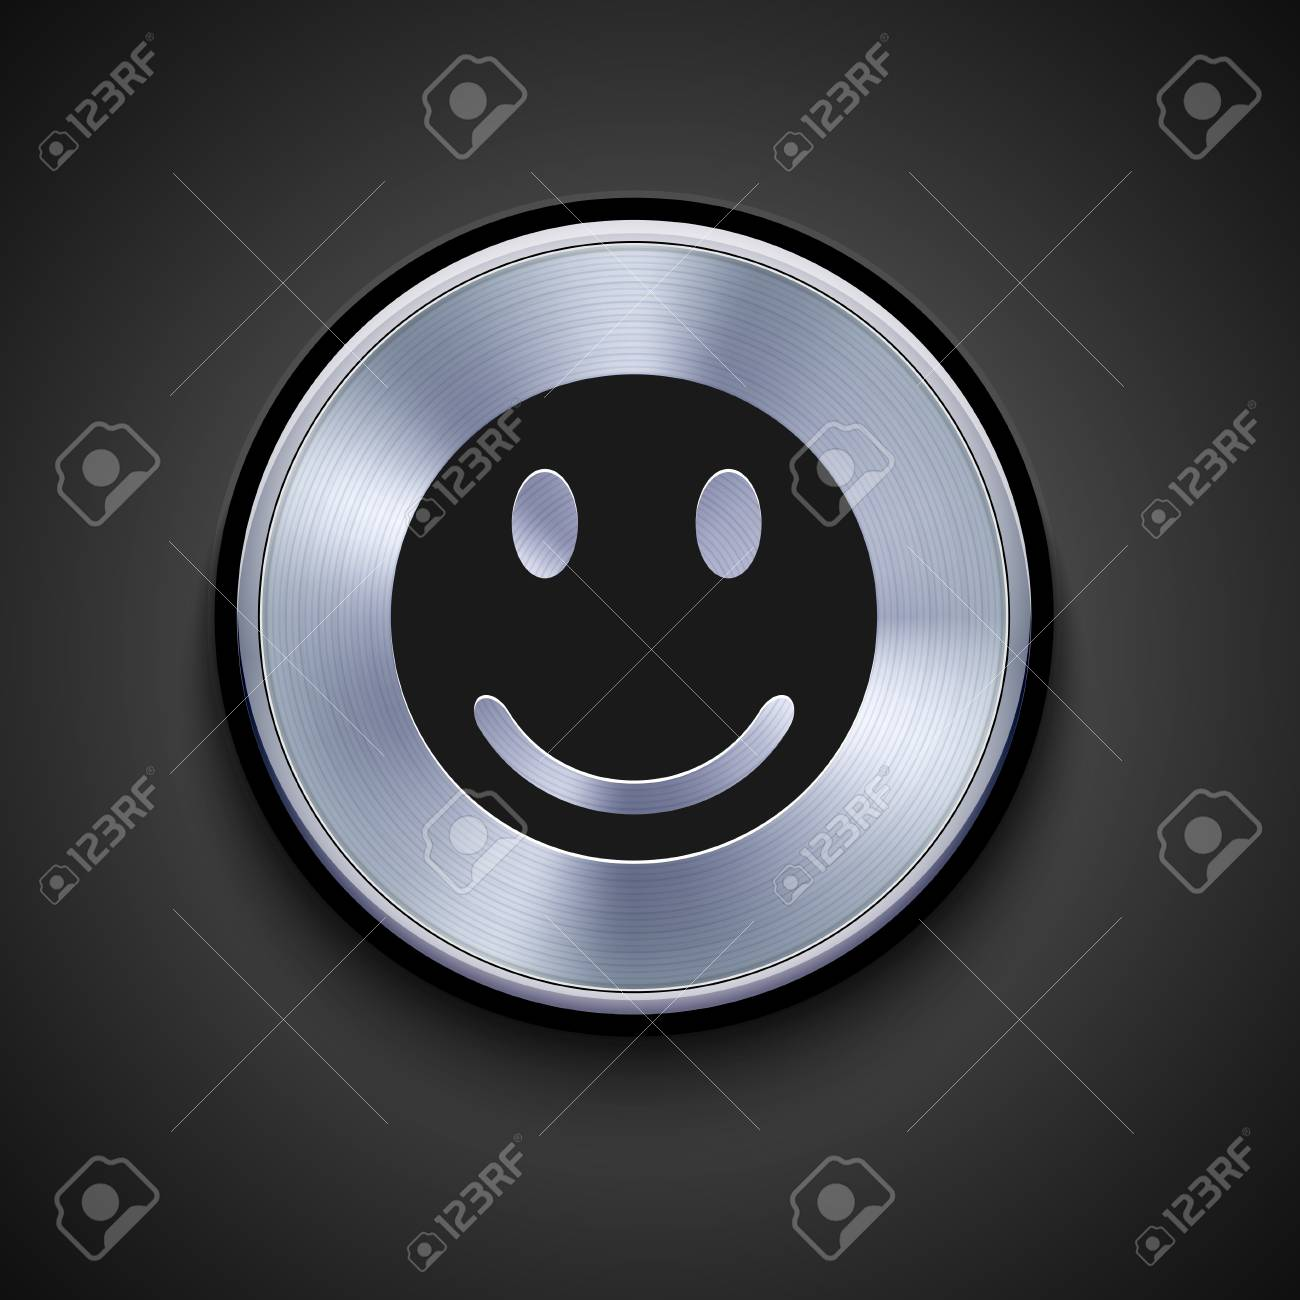 vector metal icon on gray background. Eps10 Stock Vector - 17275295